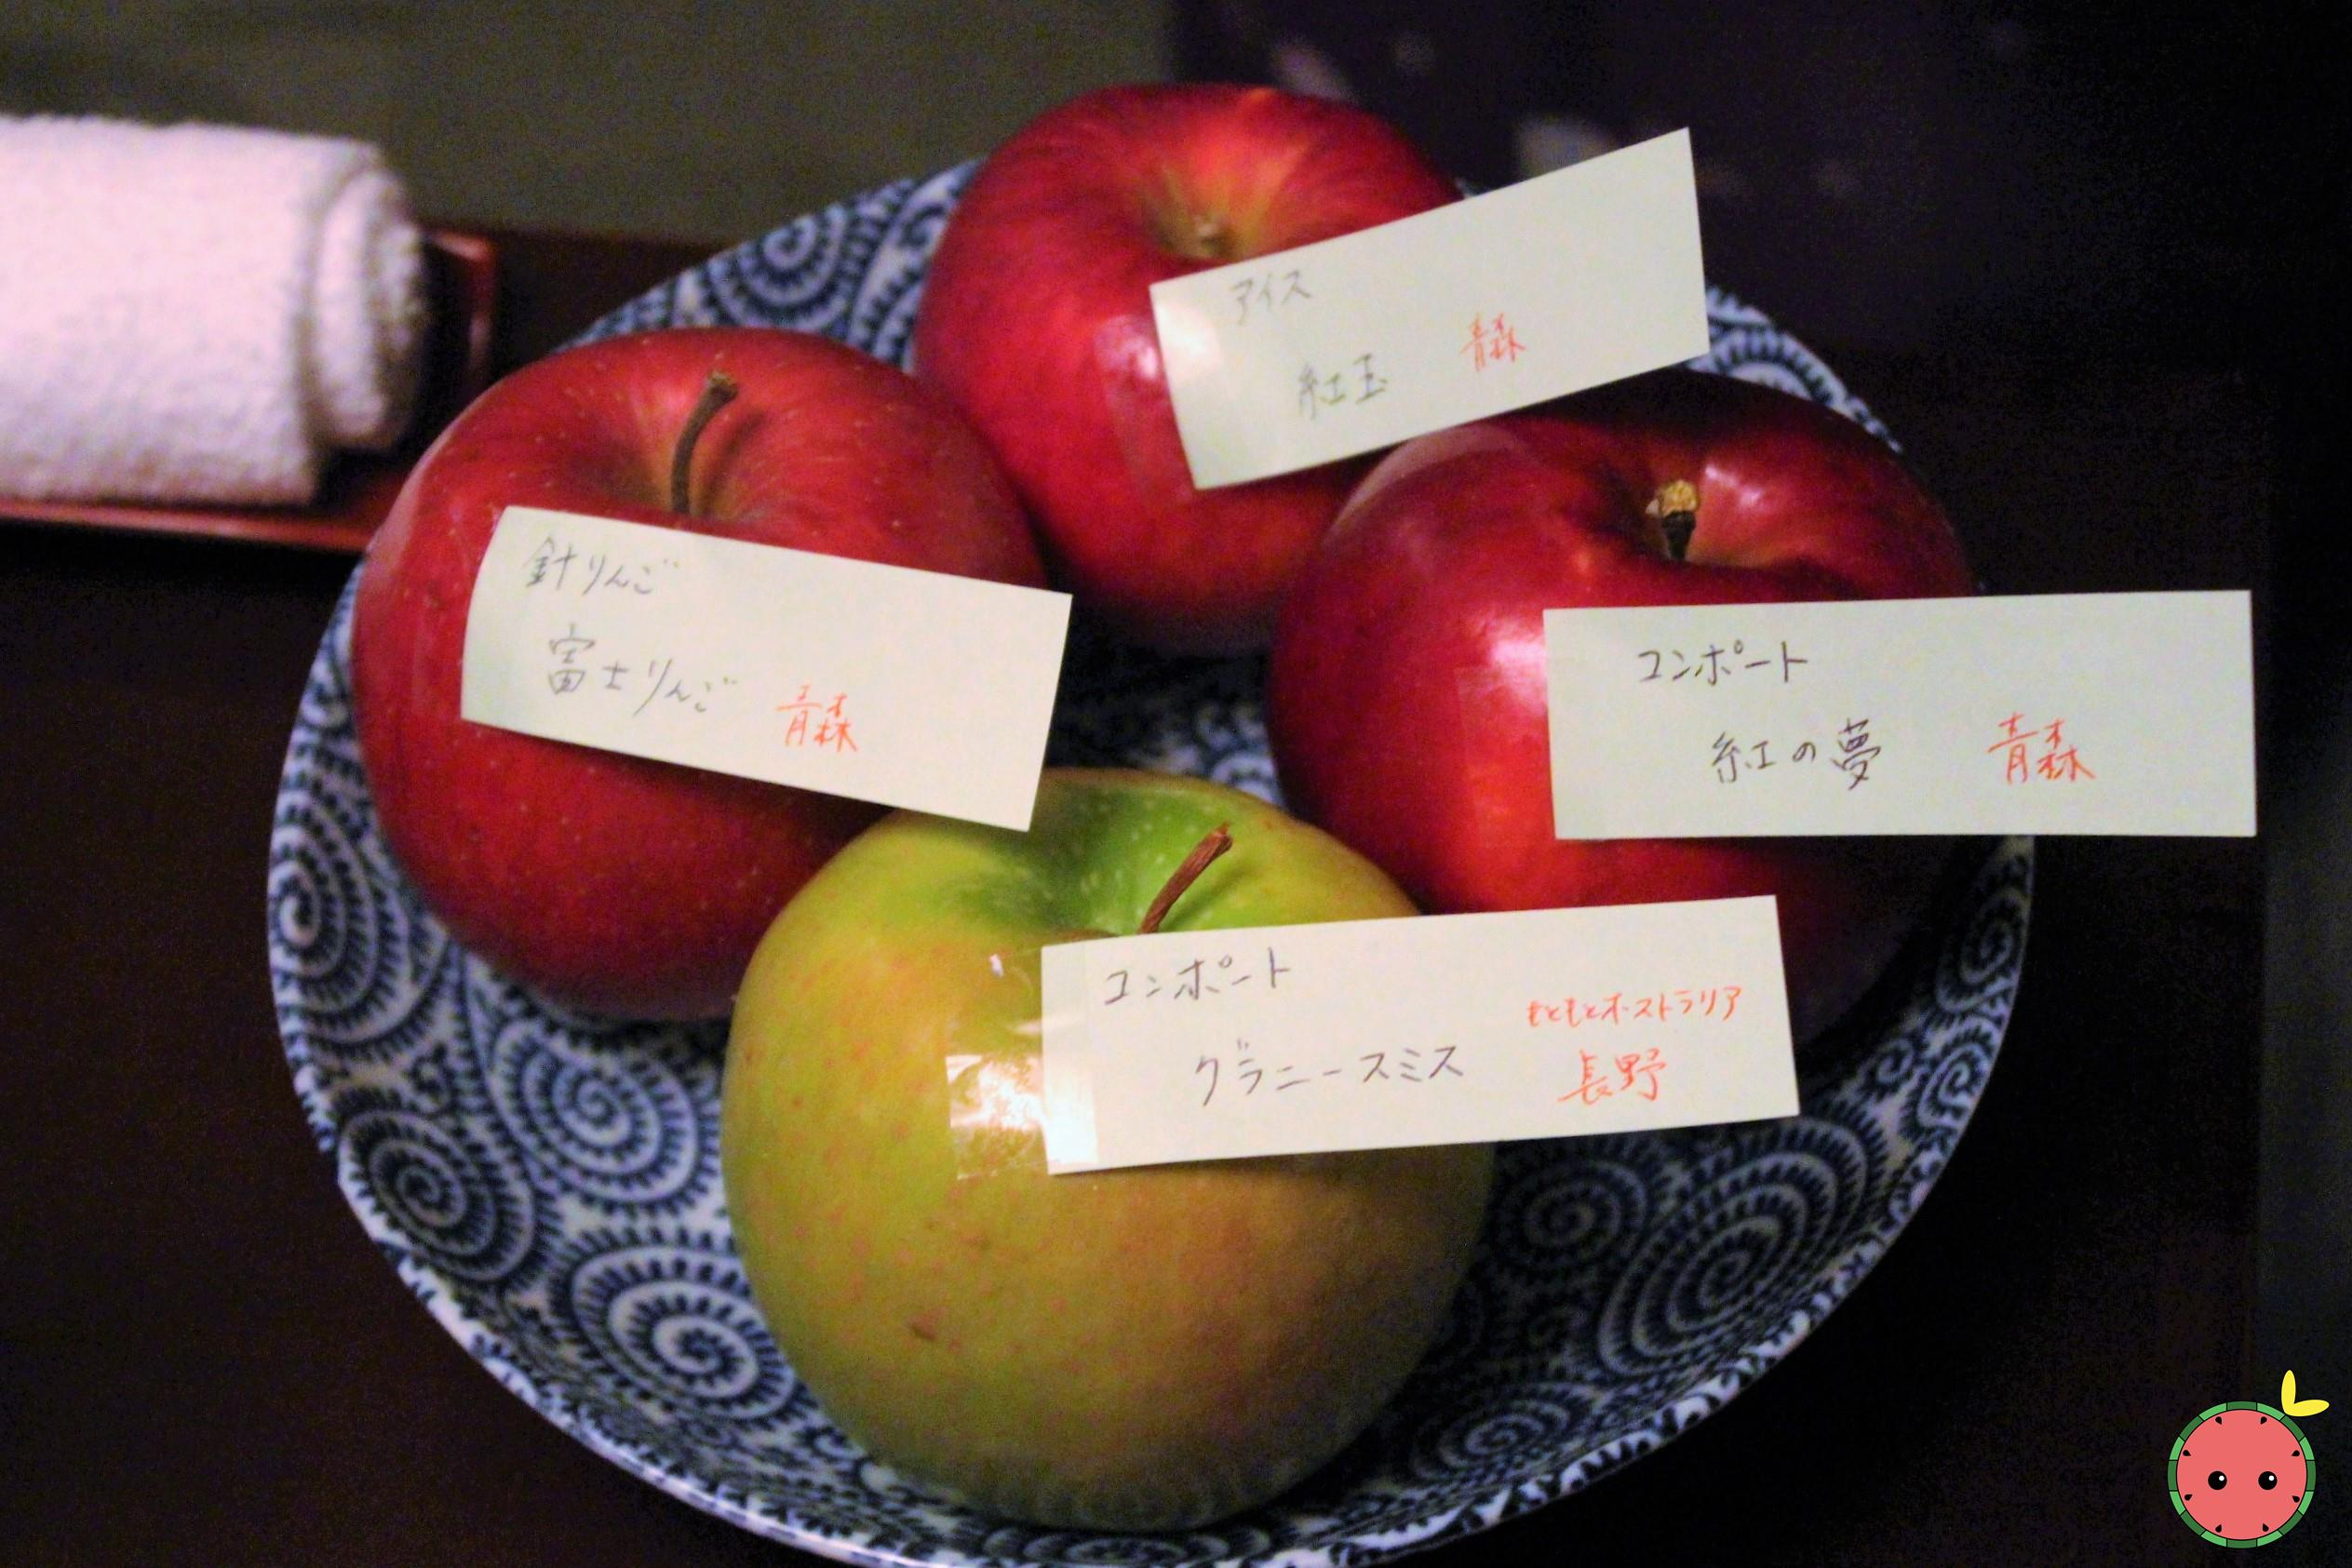 4 kinds of apples used to make the dessert